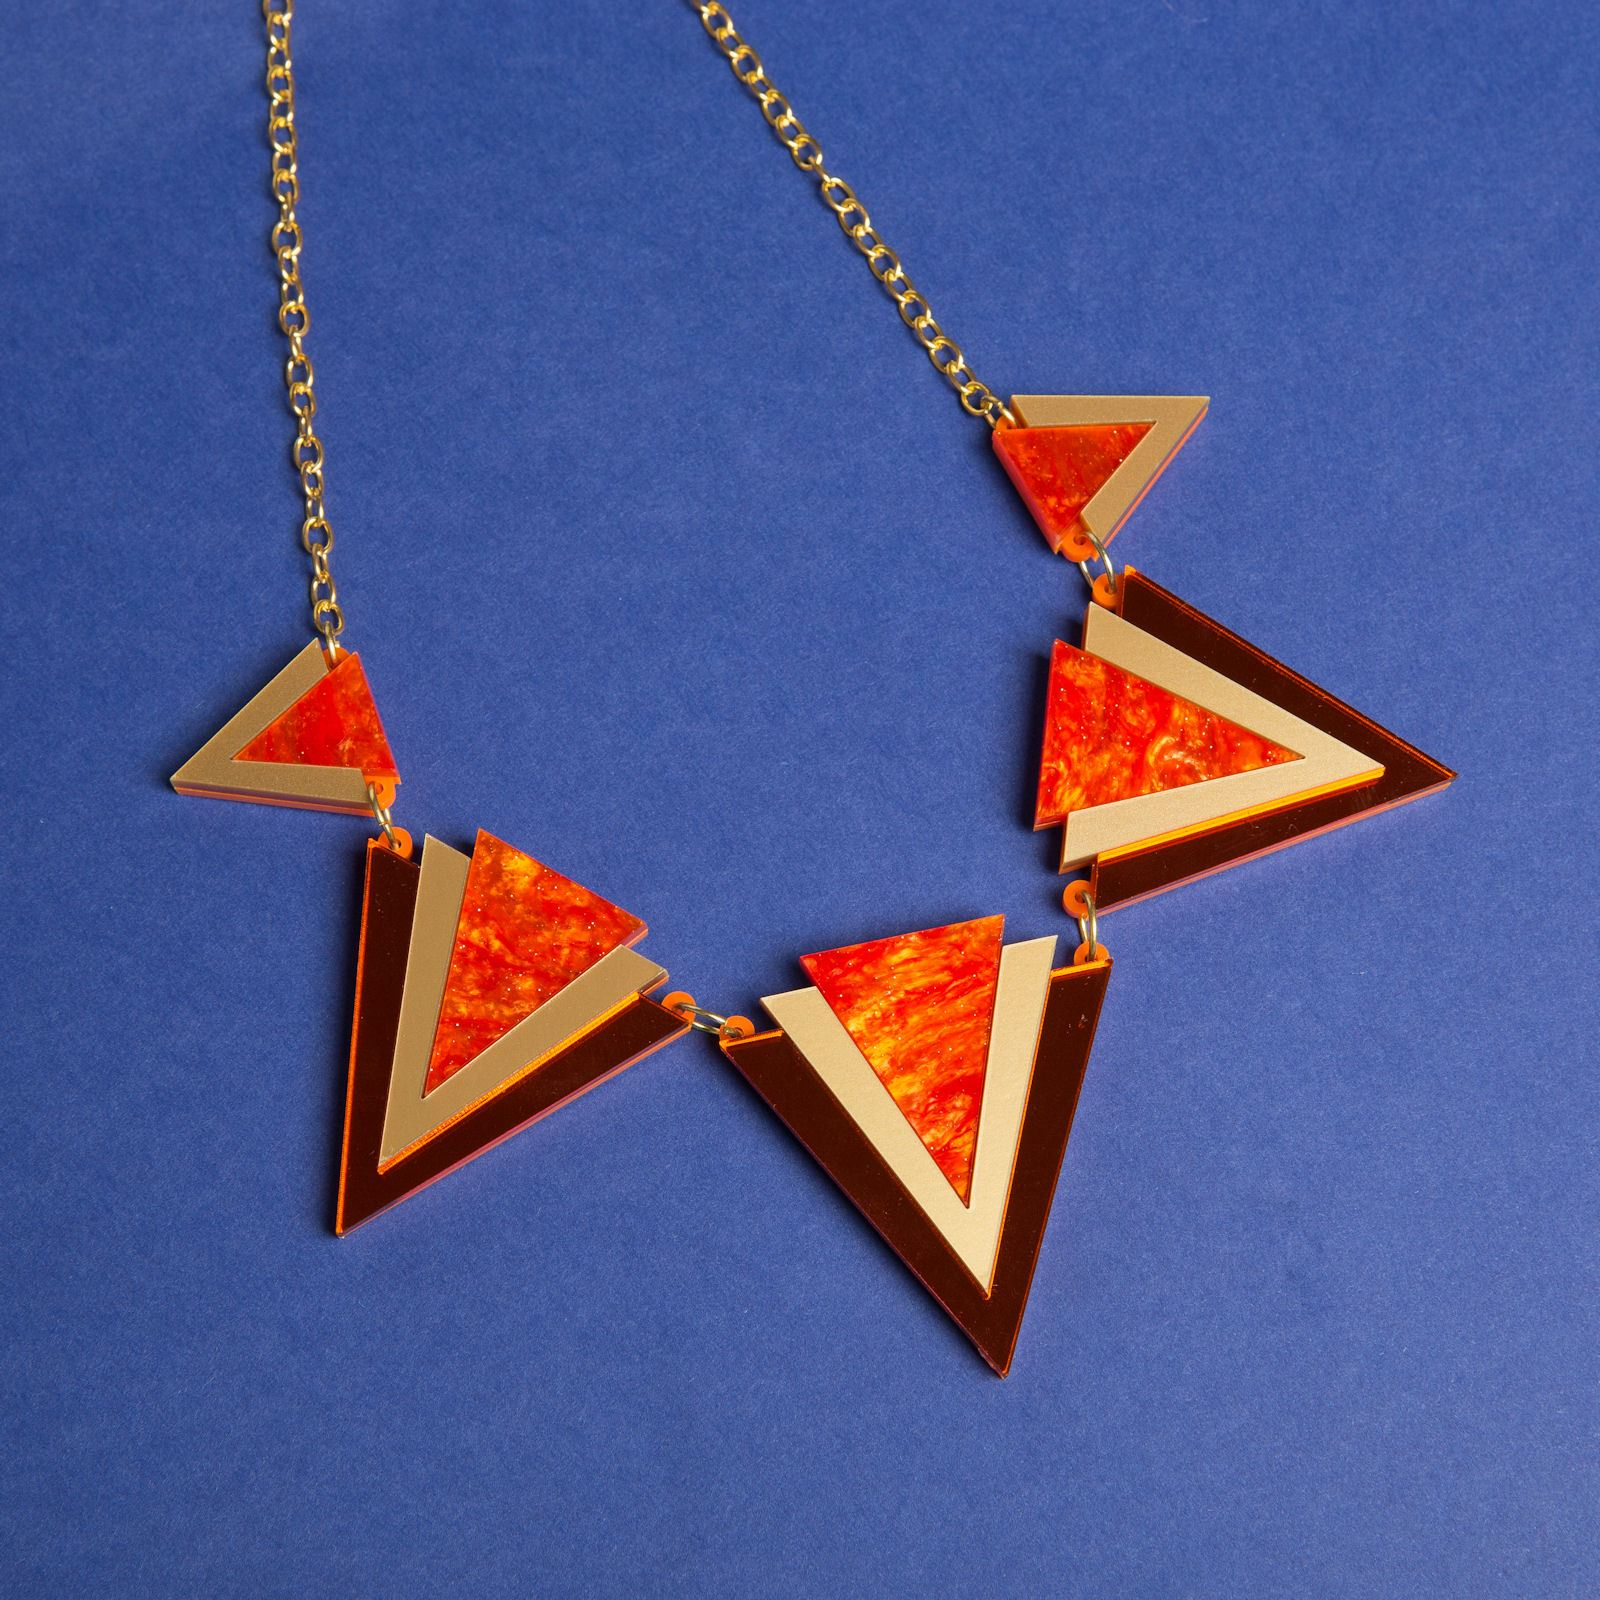 Sugar & Vice Orange Triangle Statement necklace